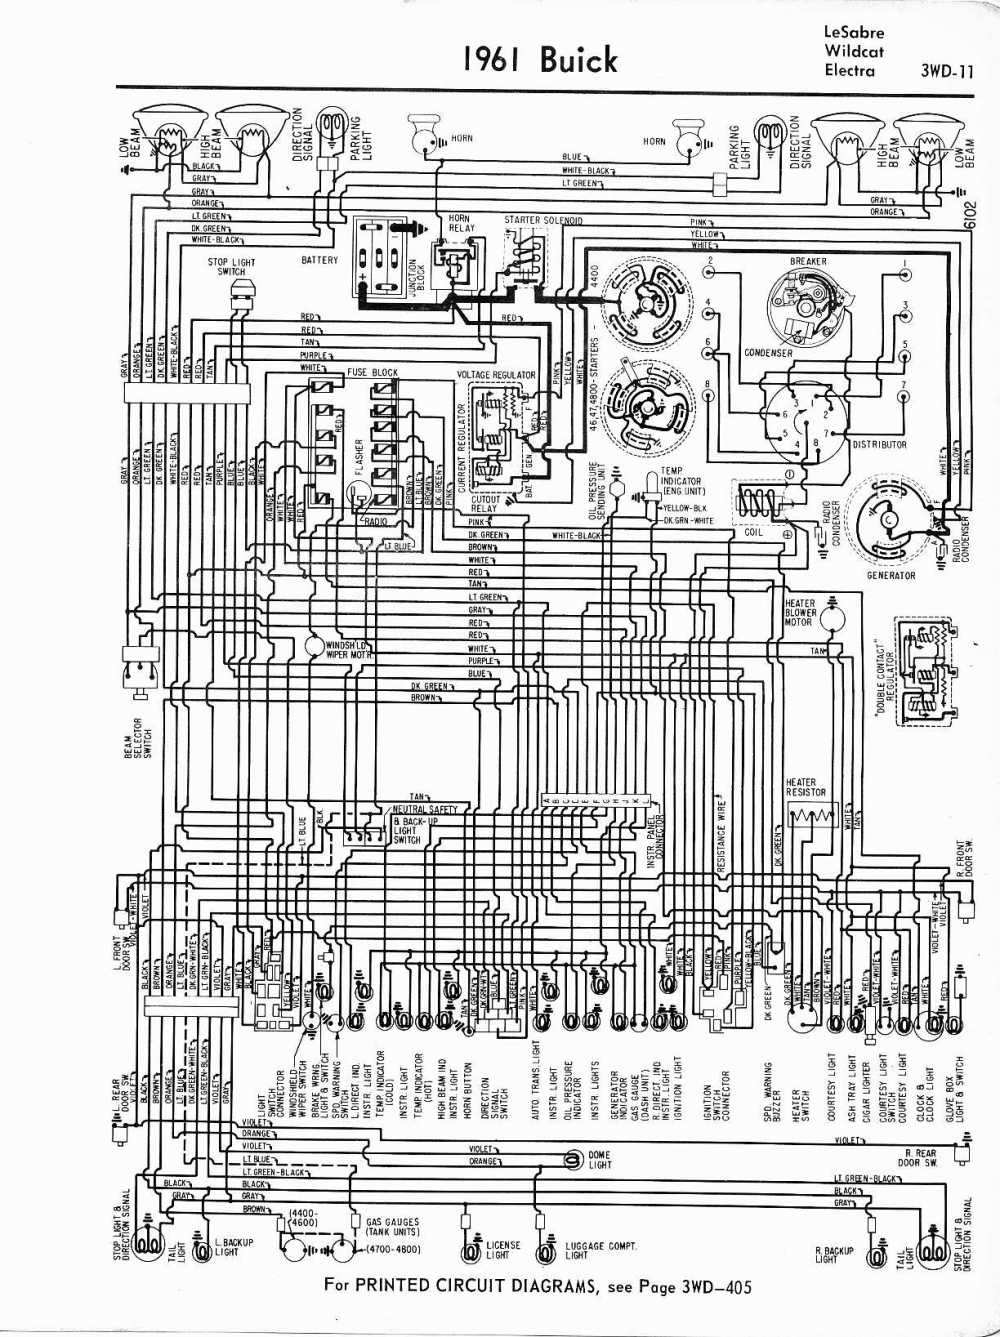 medium resolution of buick wiring diagrams 1957 19651961 lesabre wildcat electra